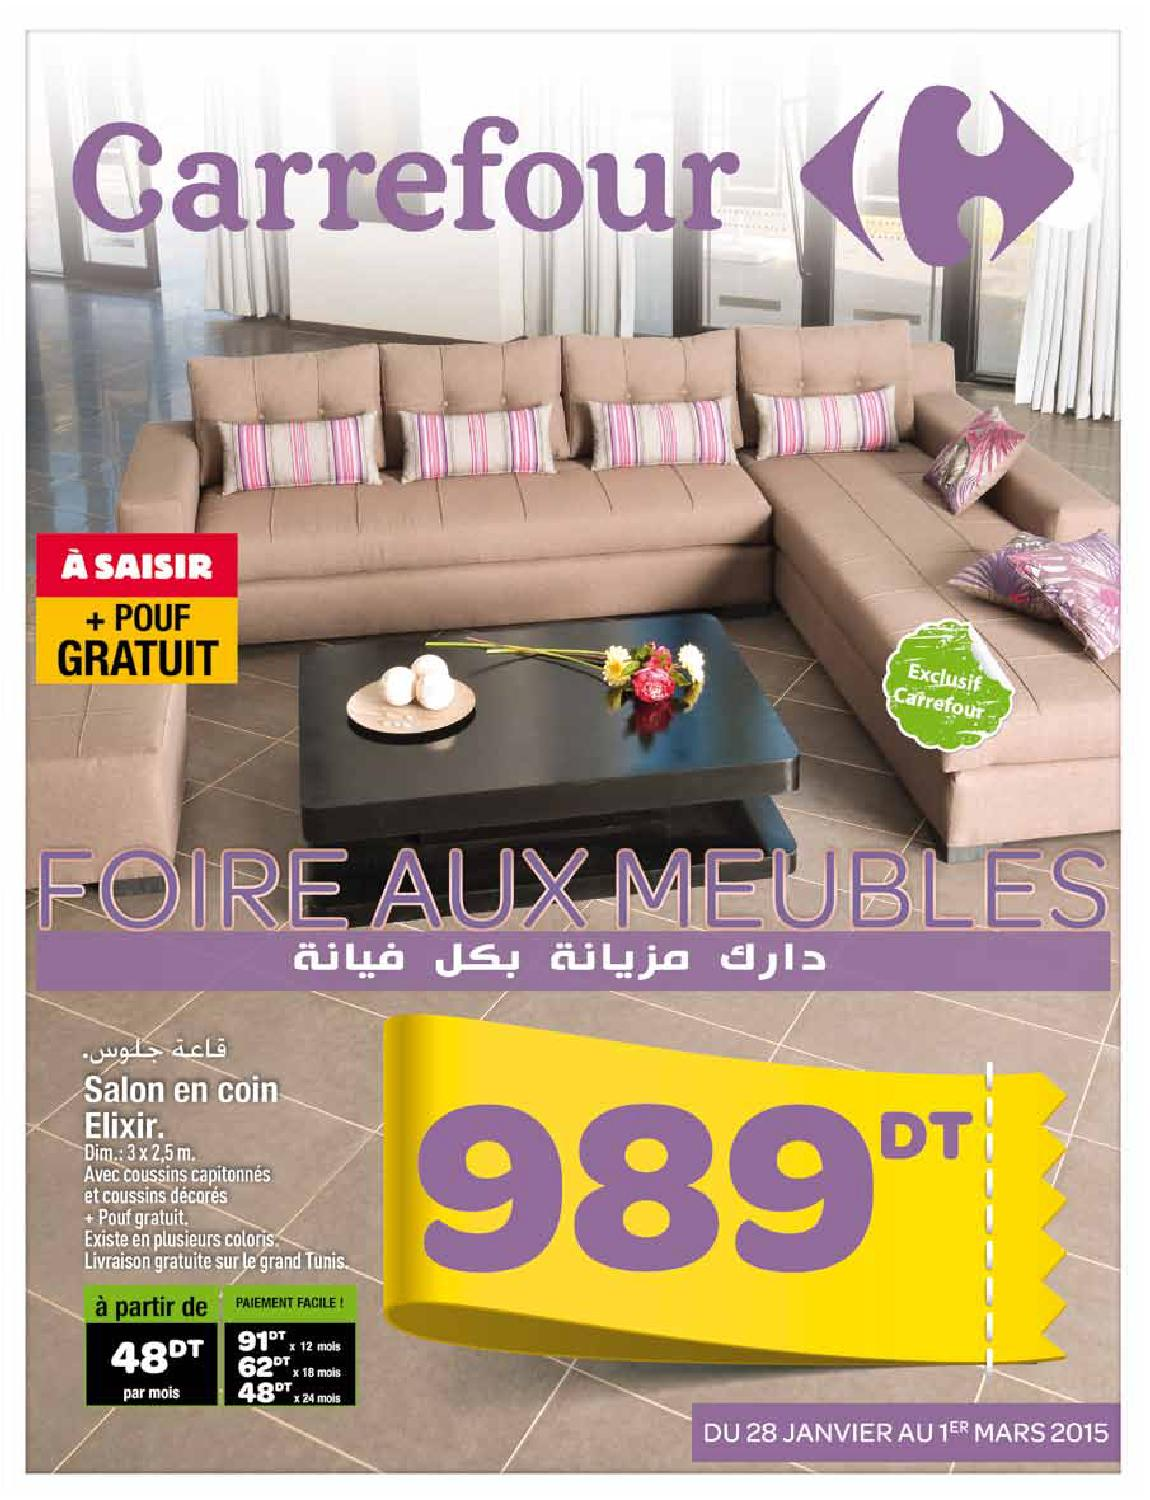 catalogue carrefour foire aux meubles by carrefour tunisie issuu. Black Bedroom Furniture Sets. Home Design Ideas